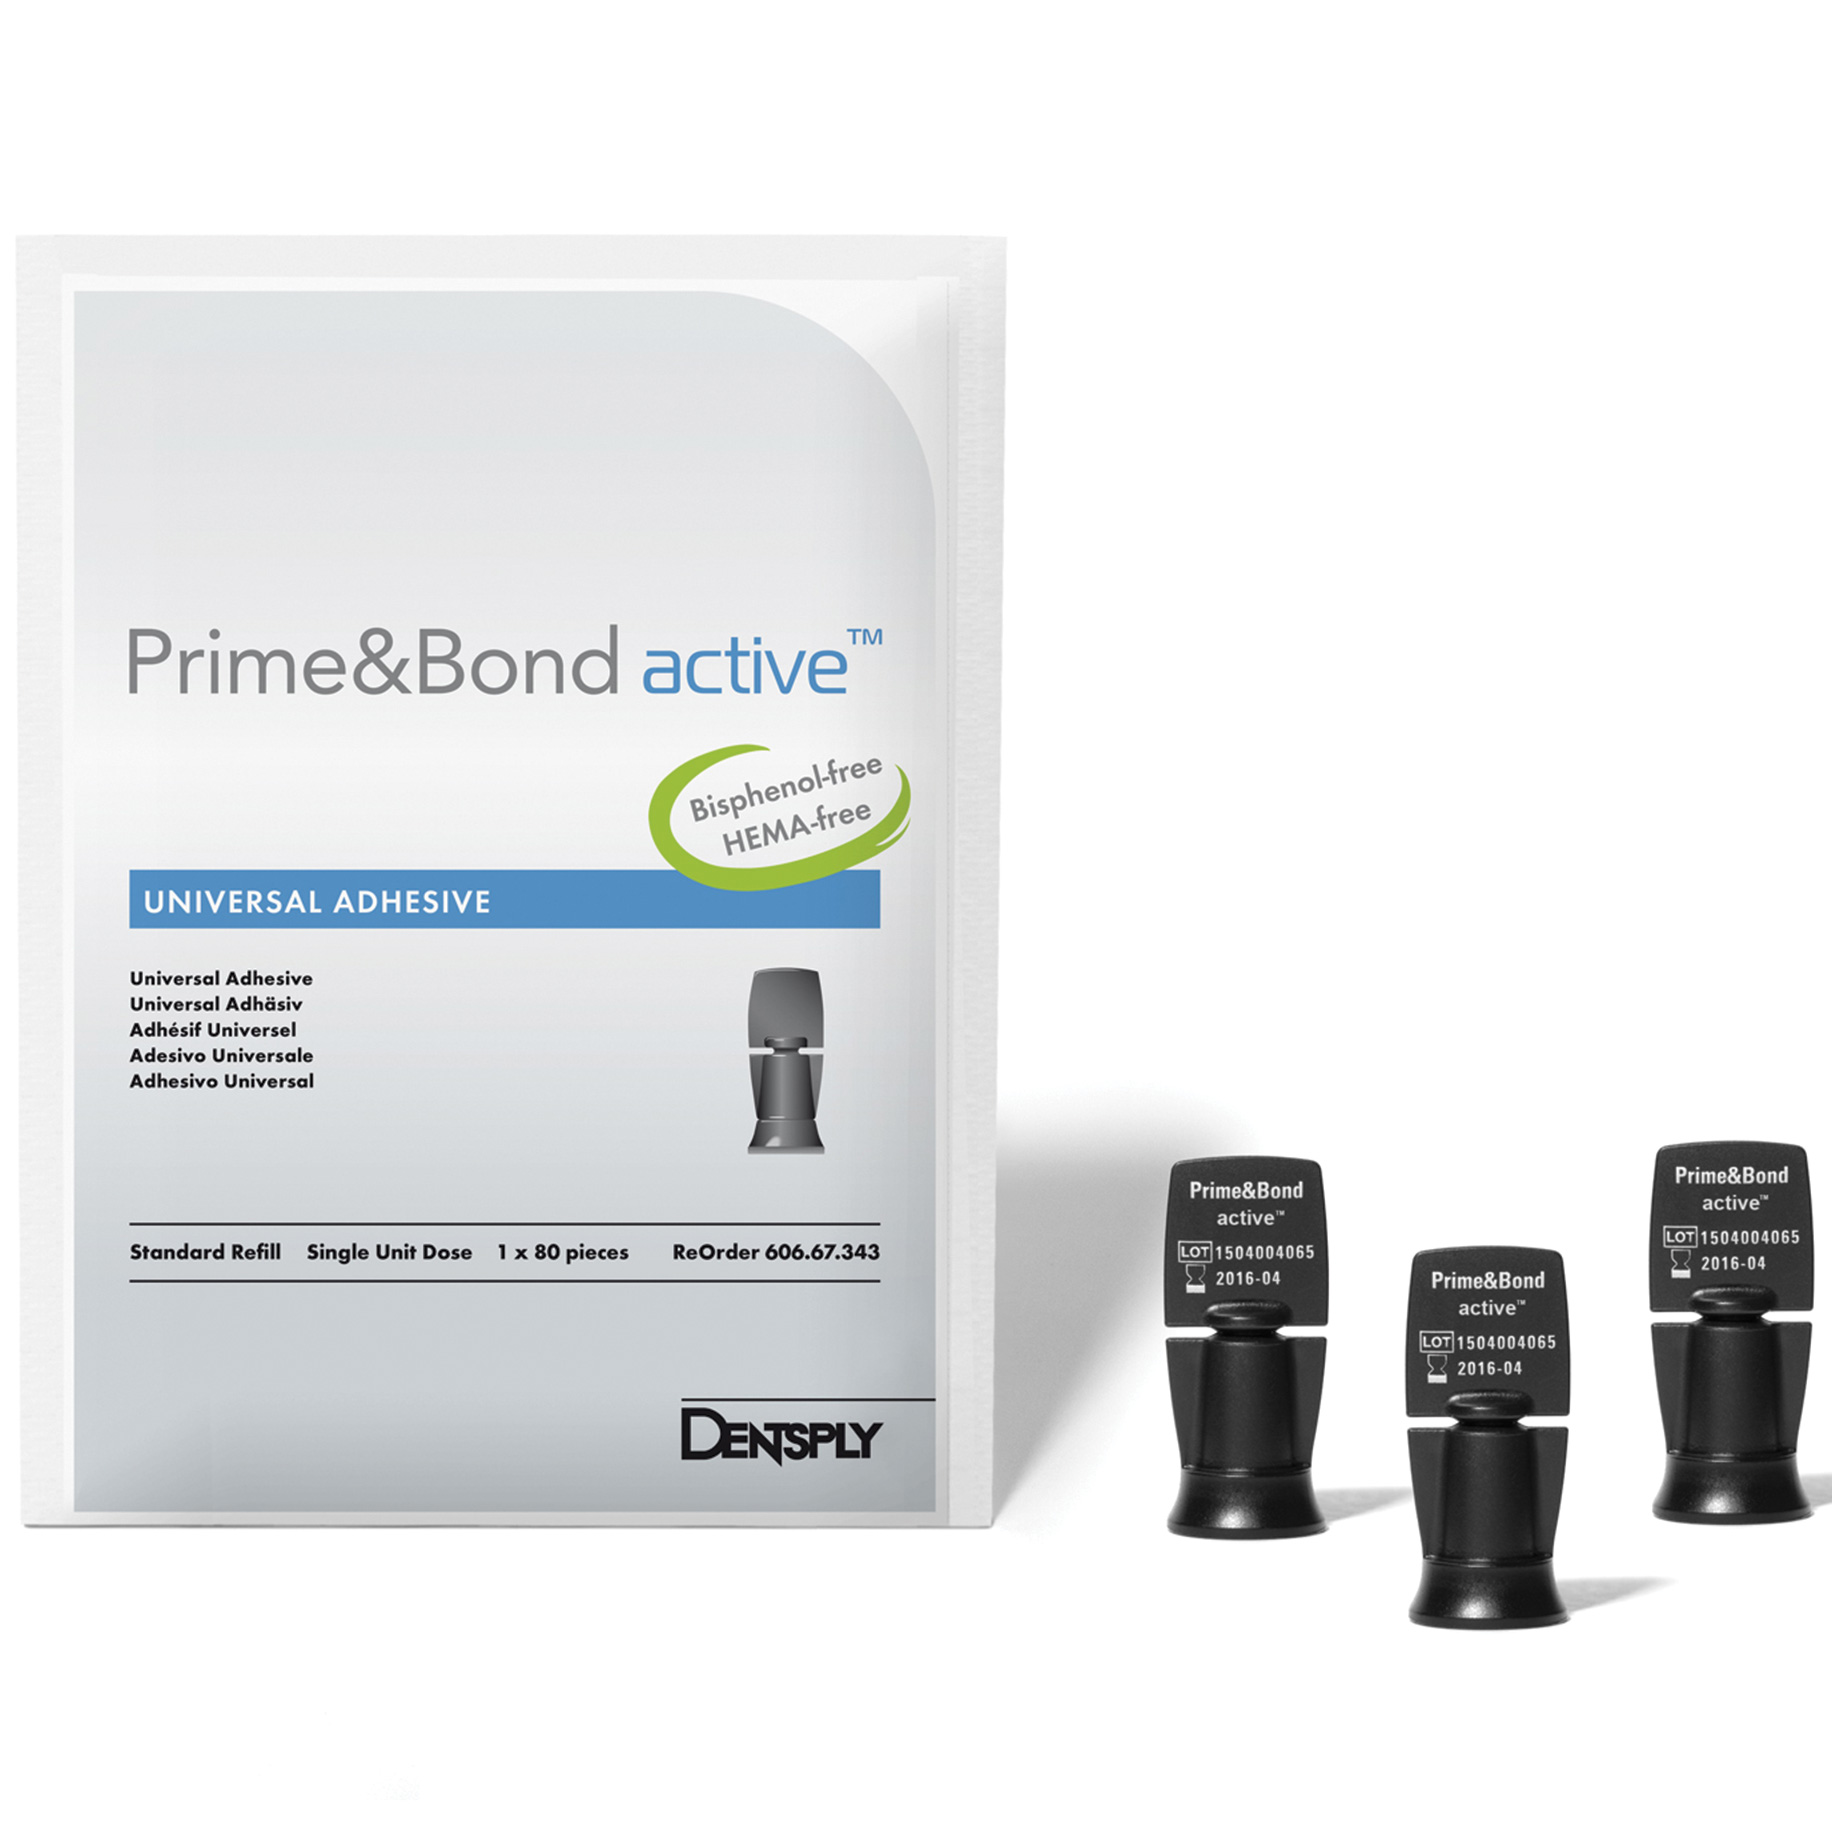 Prime&Bond active Unit Dose Refill Pack